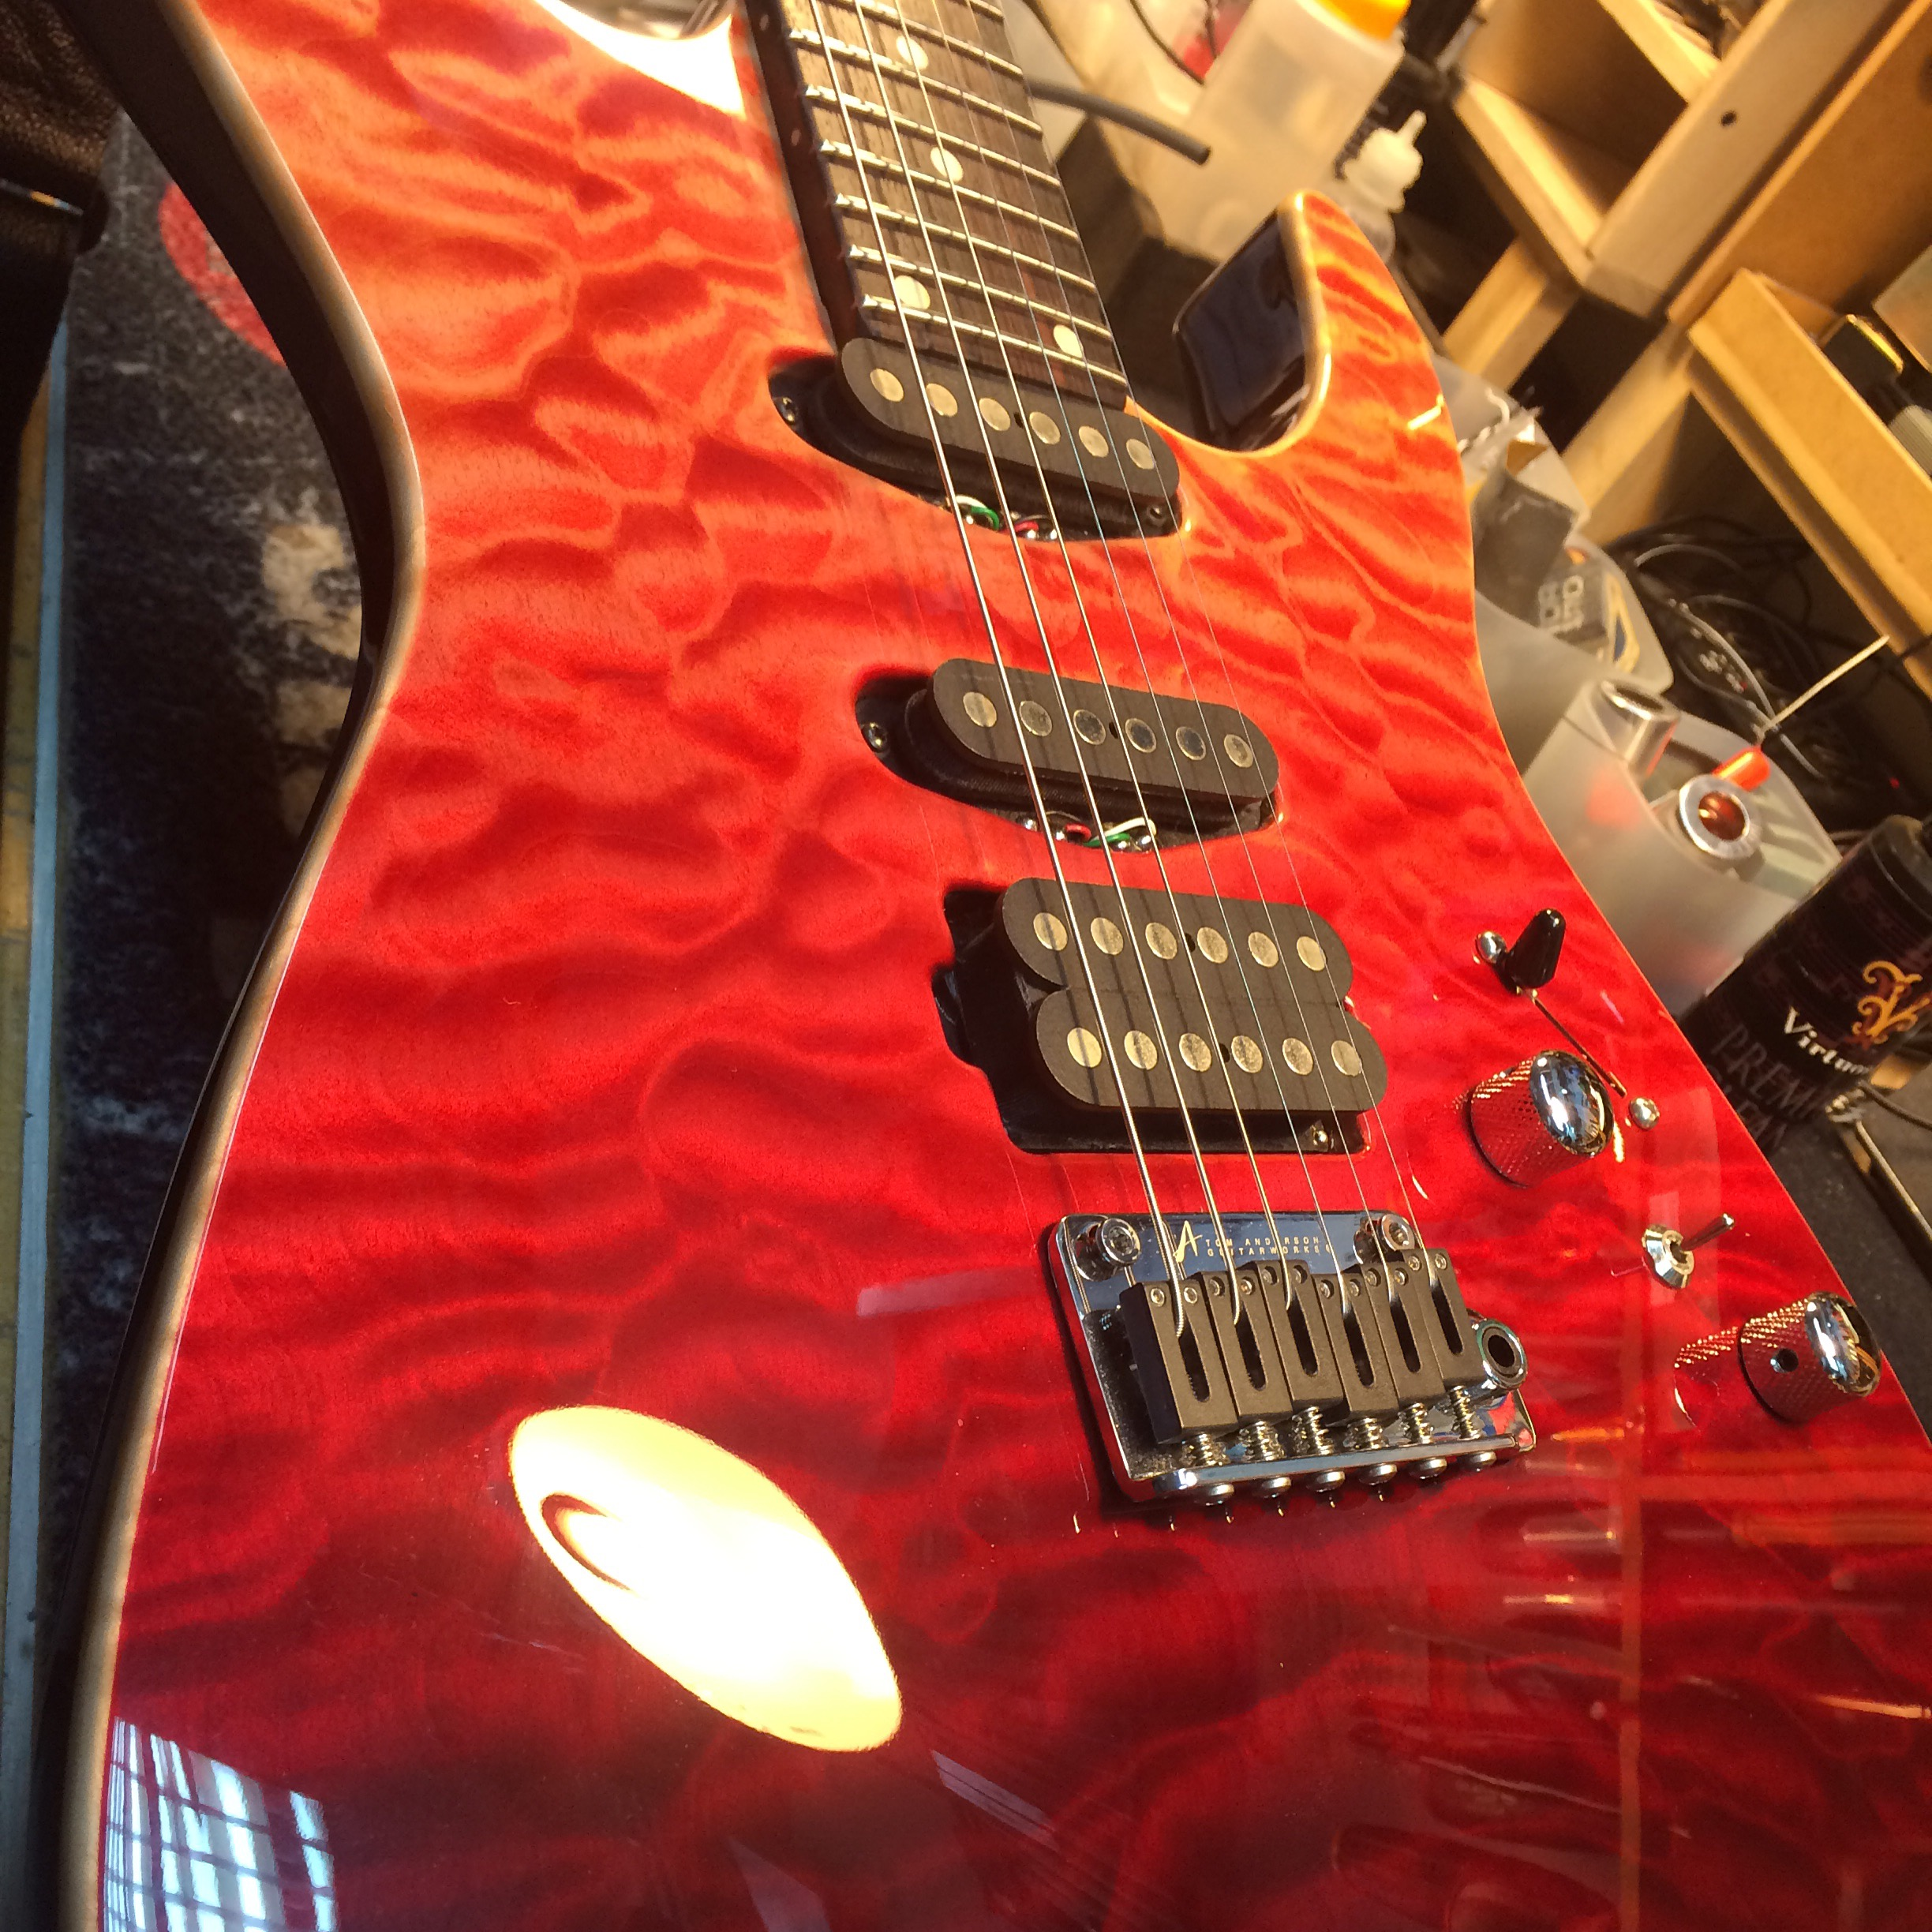 Derrick Sepnio's Tom Anderson Custom Angel sporting a beautiful red fade finish